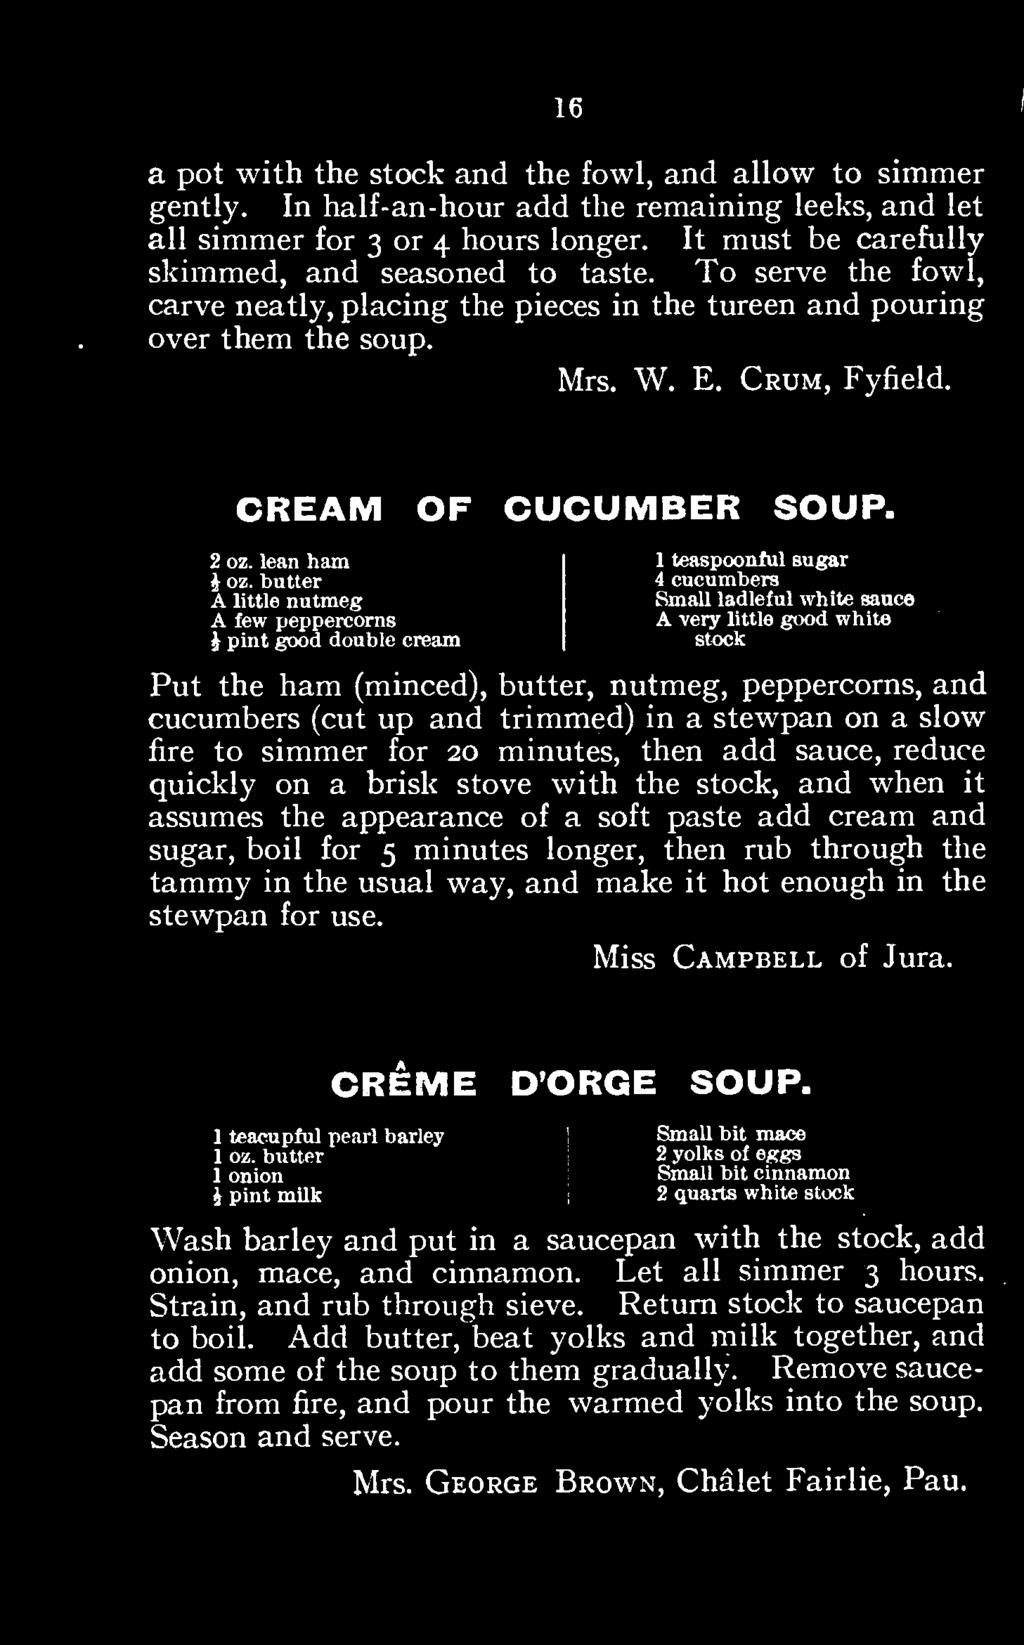 appearance of a soft paste add cream and sugar, boil for 5 minutes longer, then rub through the tammy in the usual way, and make it hot enough in the stewpan for use. Miss Campbell of Jura.